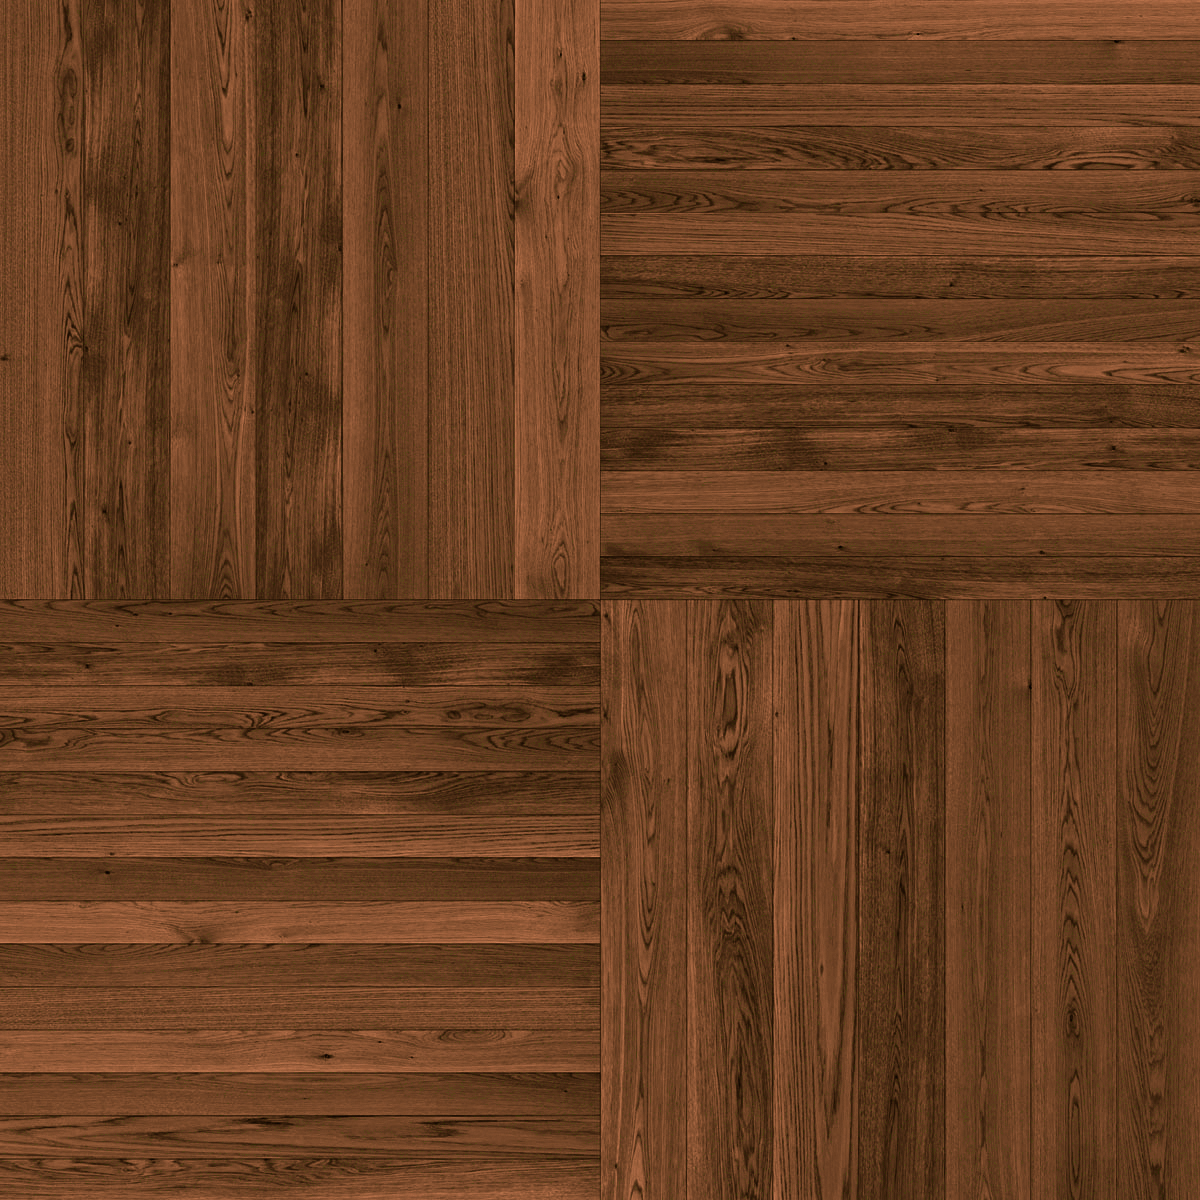 Sketchup texture texture for Timber flooring